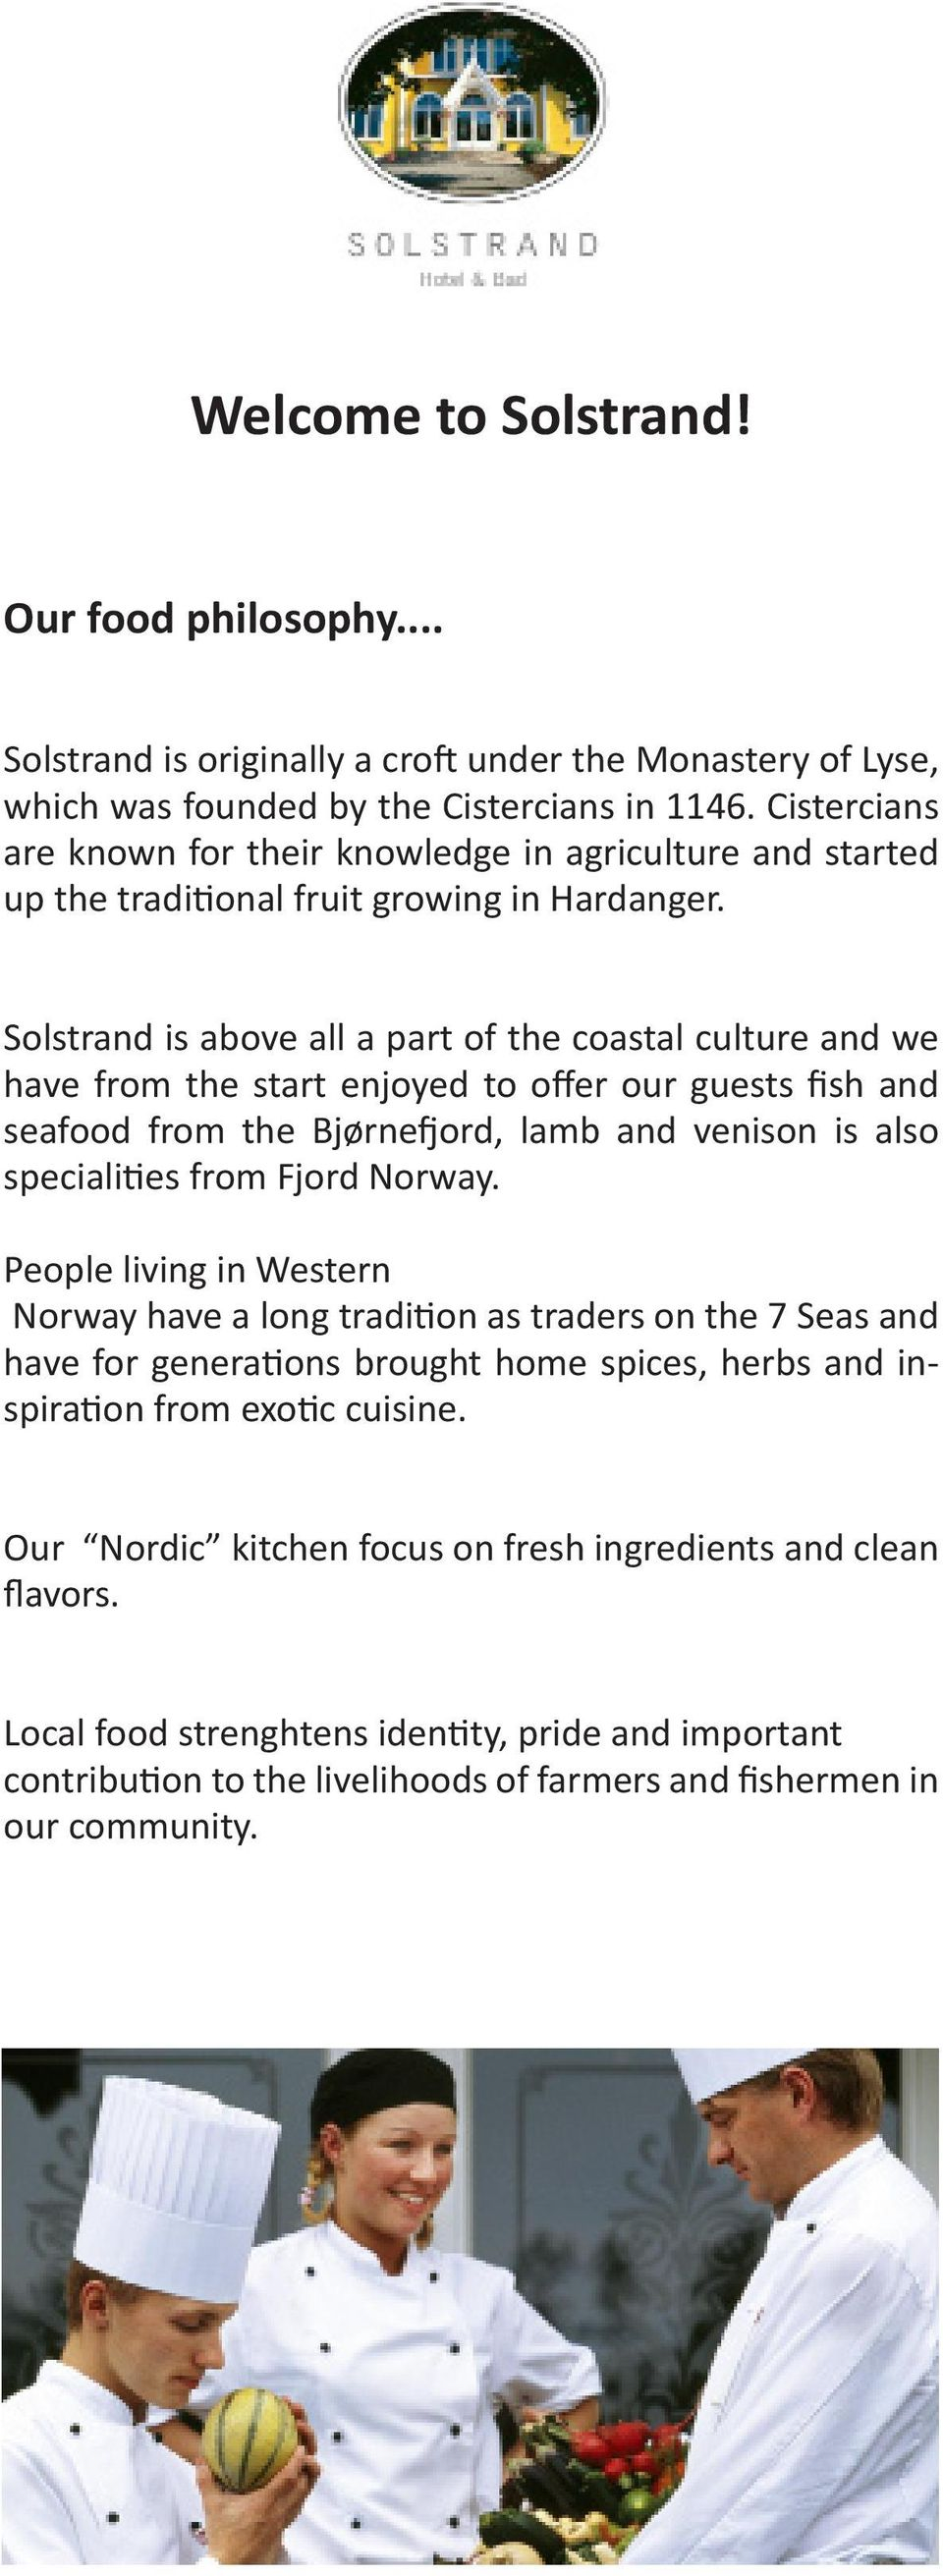 Solstrand is above all a part of the coastal culture and we have from the start enjoyed to offer our guests fish and seafood from the Bjørnefjord, lamb and venison is also specialities from Fjord